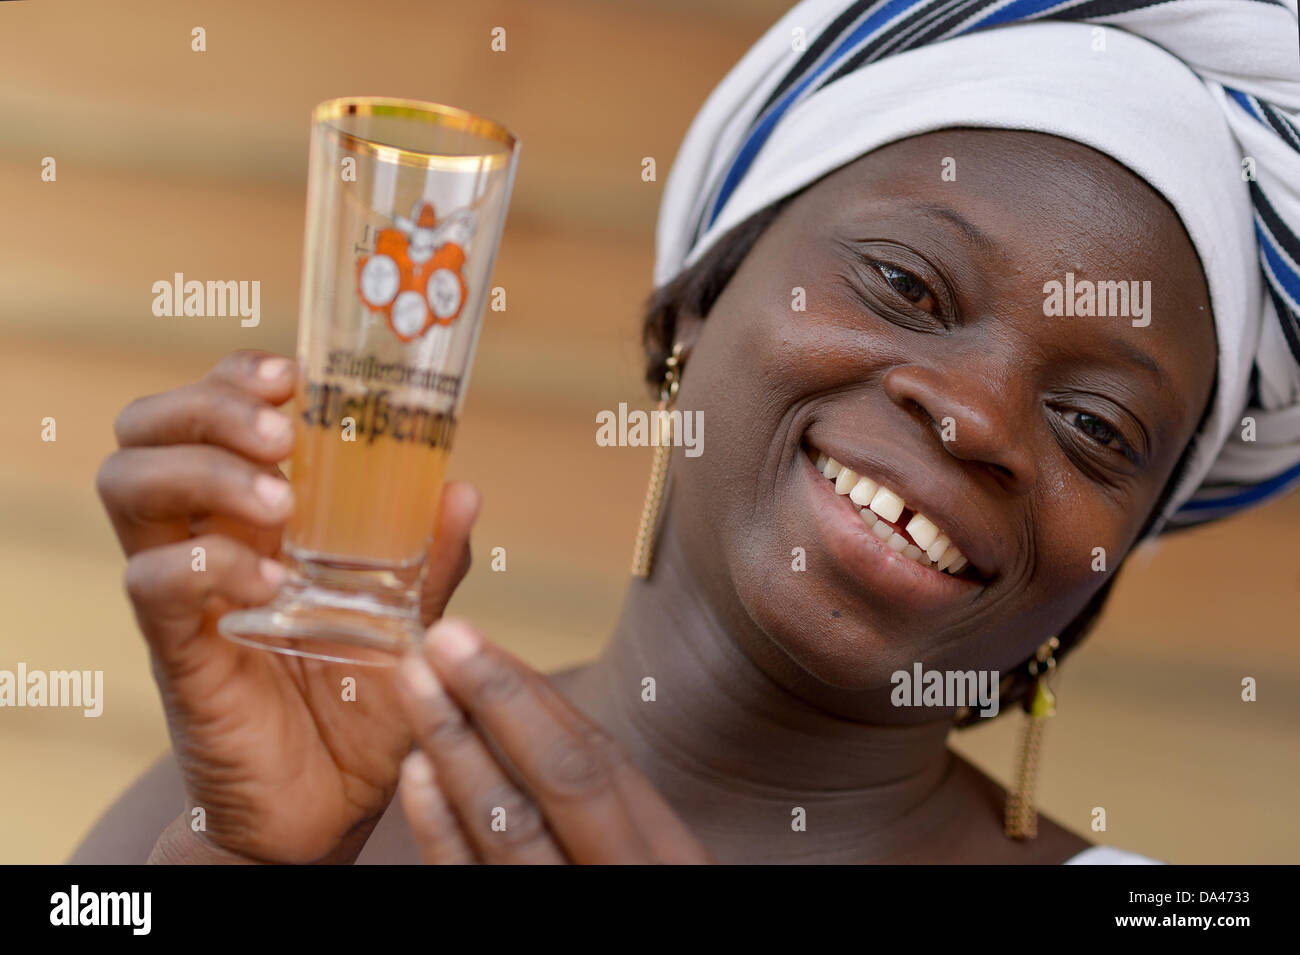 Master brewer from Burkina Faso, Ine Kam, presents her millet beer at the brewery of Weissenohe Abbey in Weissenohe, - Stock Image